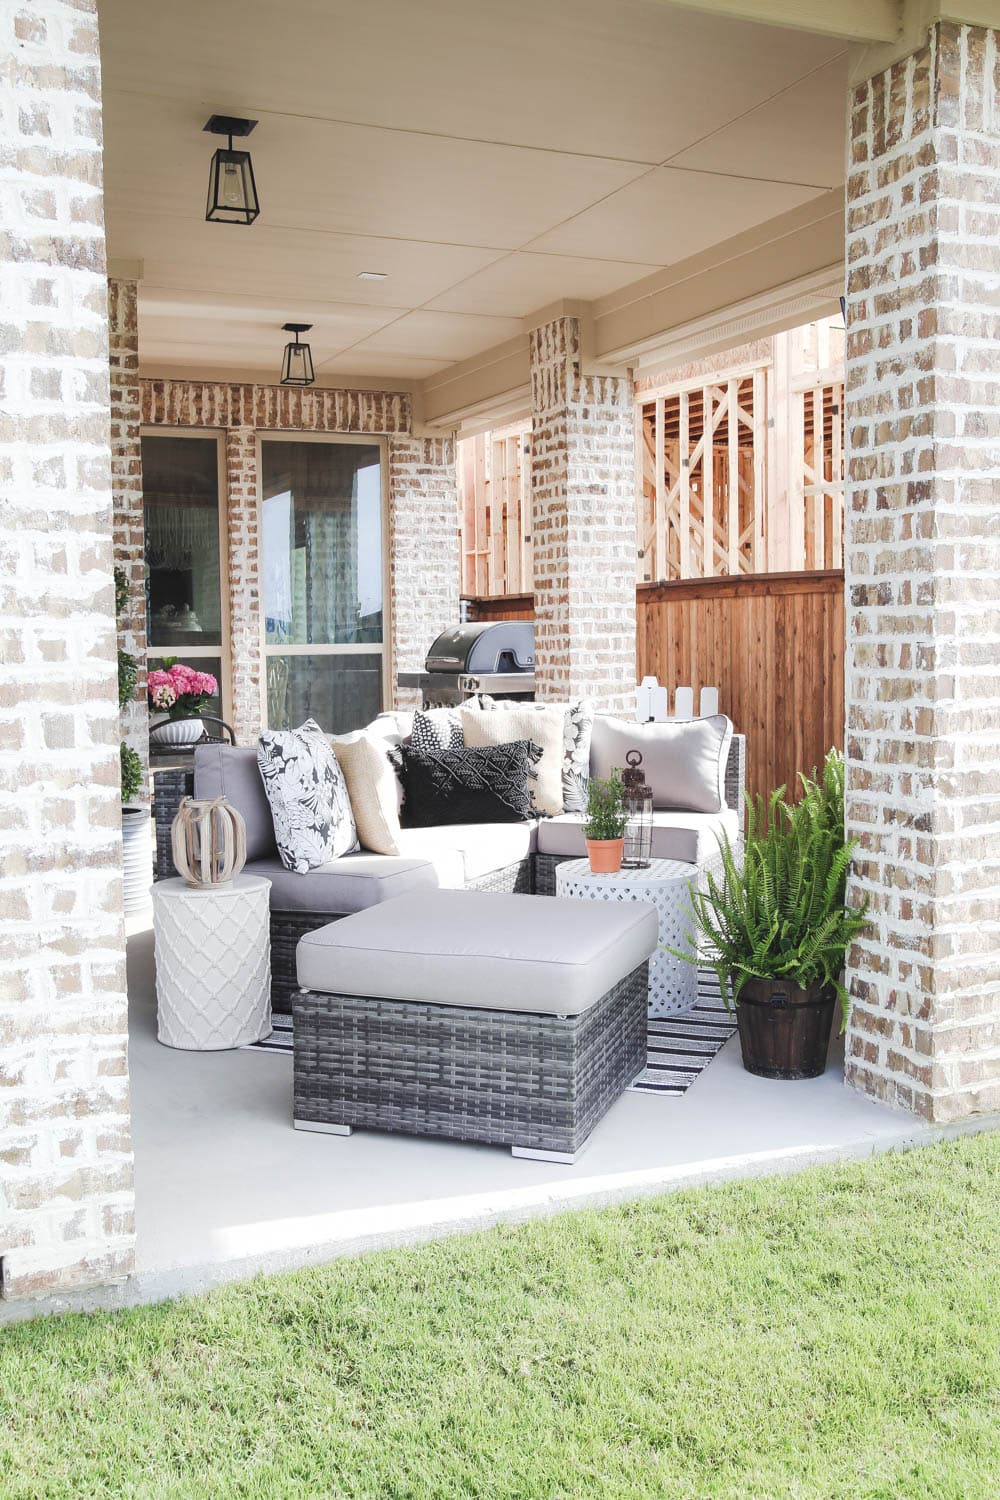 Refresh your outdoor space and update your patio for spring with these tips + a guide! #ad #AtHomeStores